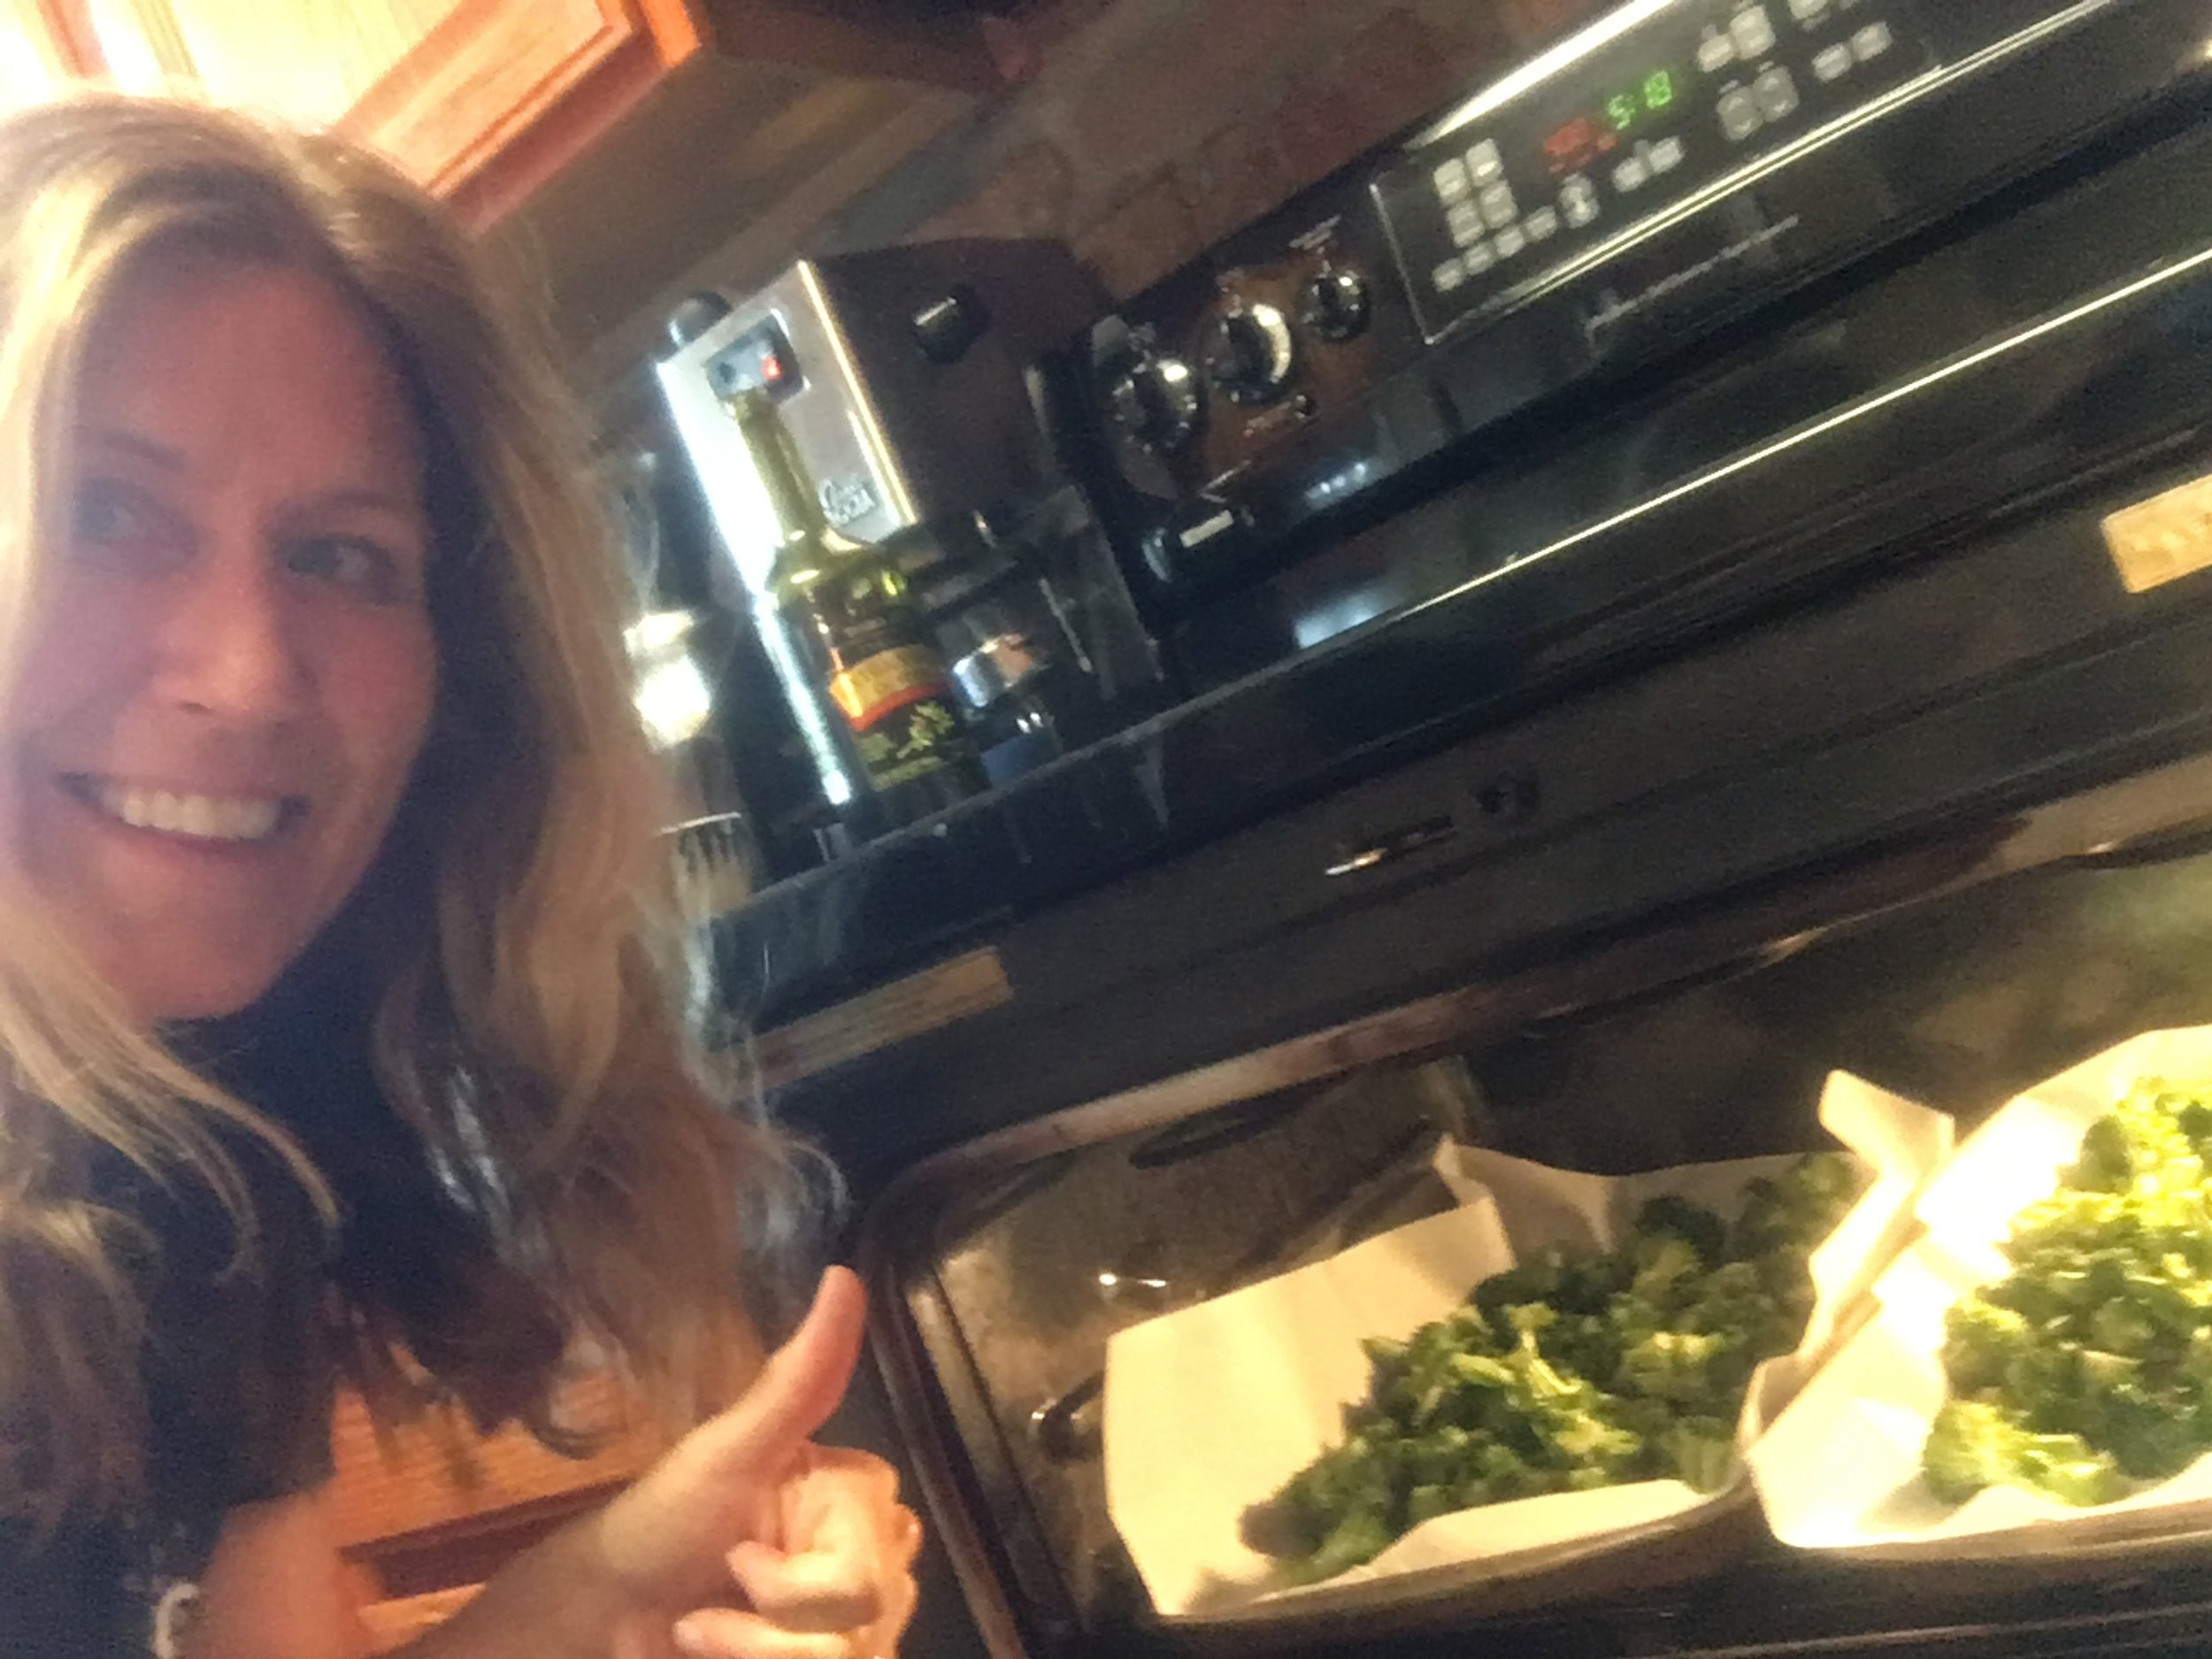 Debbie roasting broccoli to go with tofu and peanut sauce, as a move toward her values-based goal of a more plant-based diet!